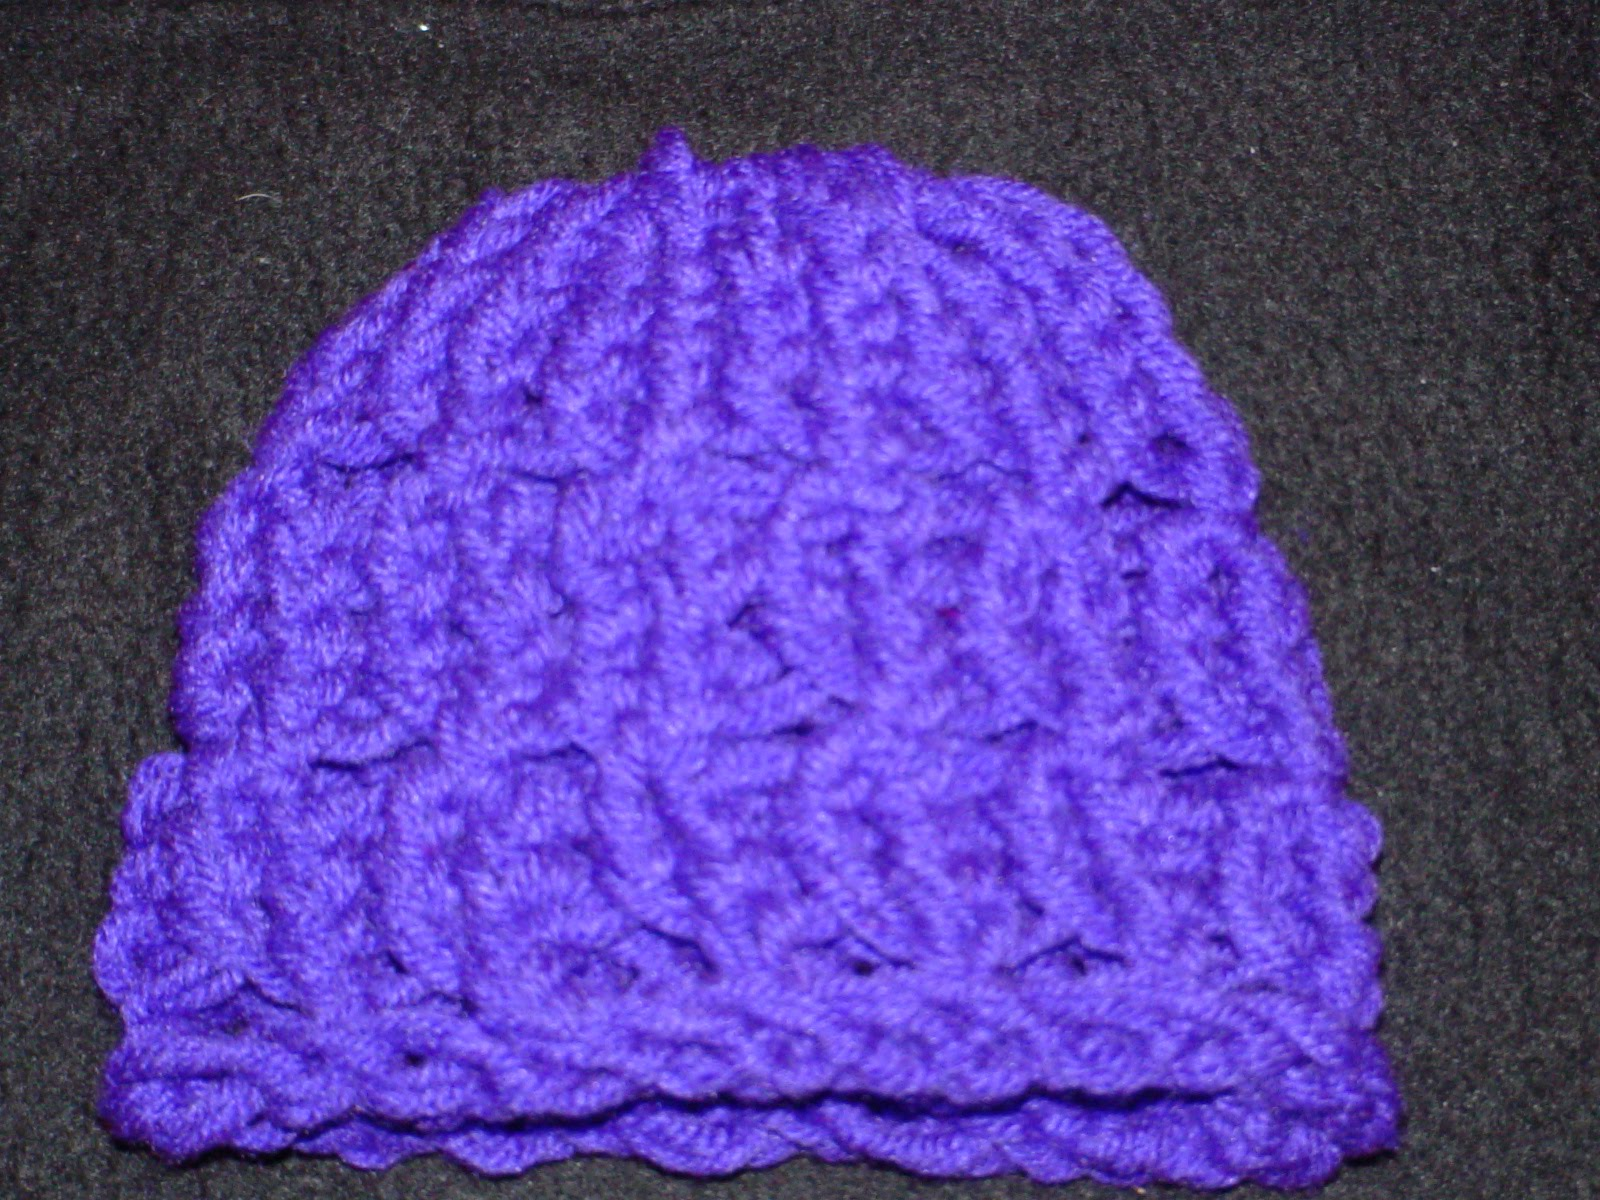 http://kniftyknitterweekly.blogspot.com/2014/02/patterned-hat.html